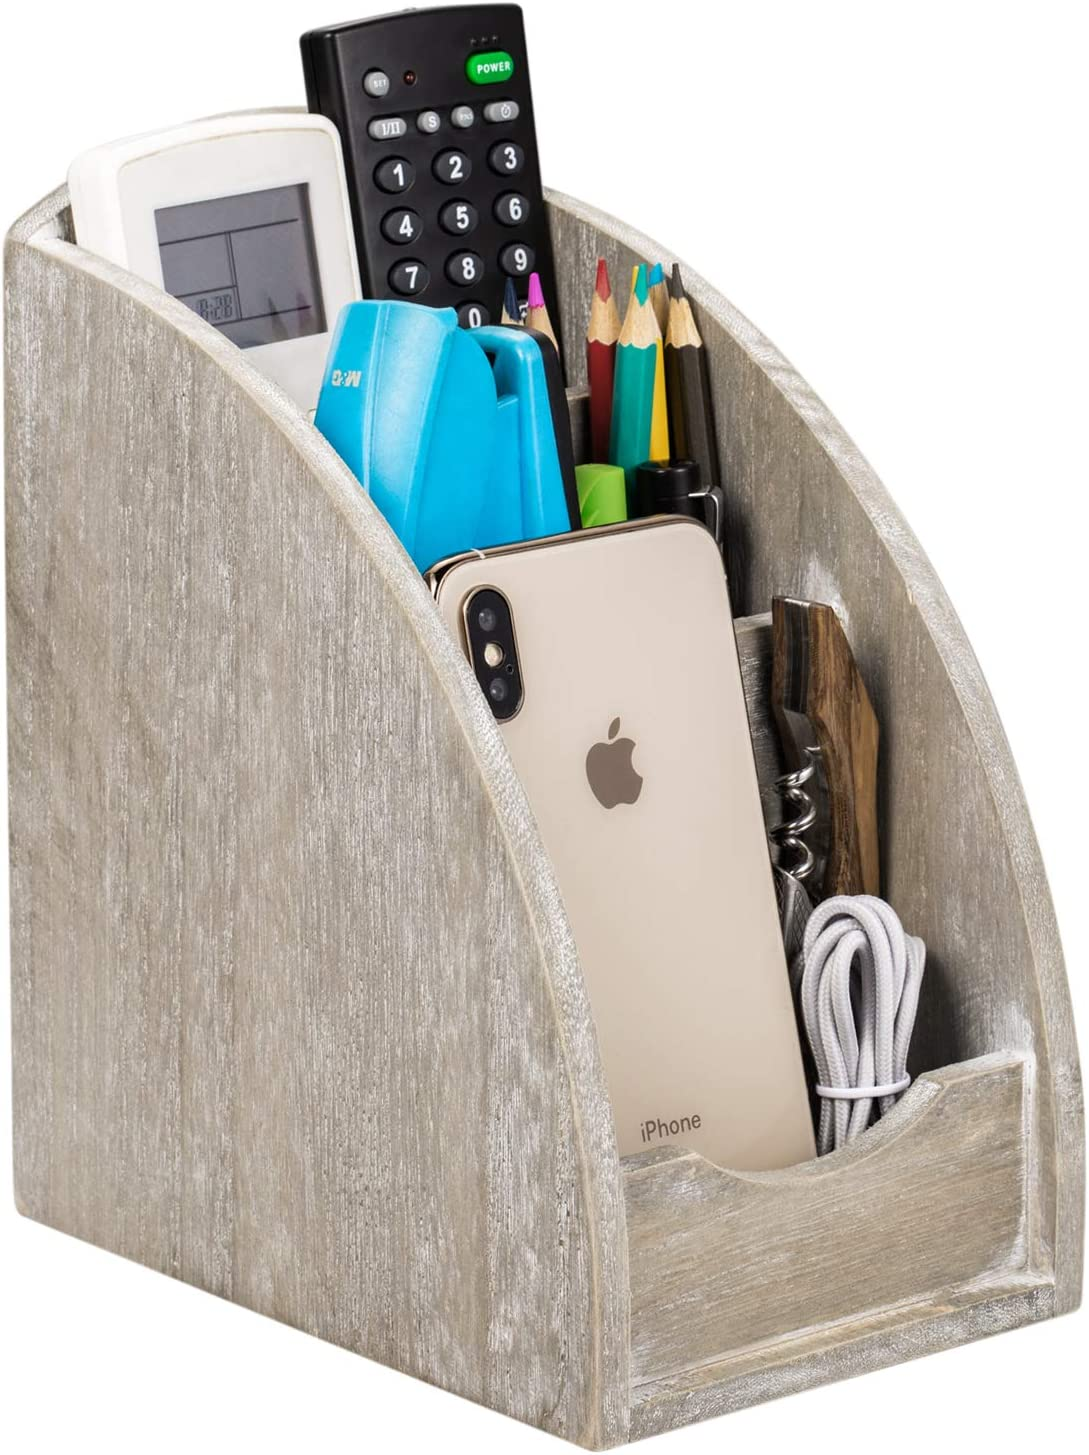 NEX Remote Control Holder, 3 Slot Wooden Remote Control Caddy Media Organizer, Office Supply Storage Rack(Rustic Gray)